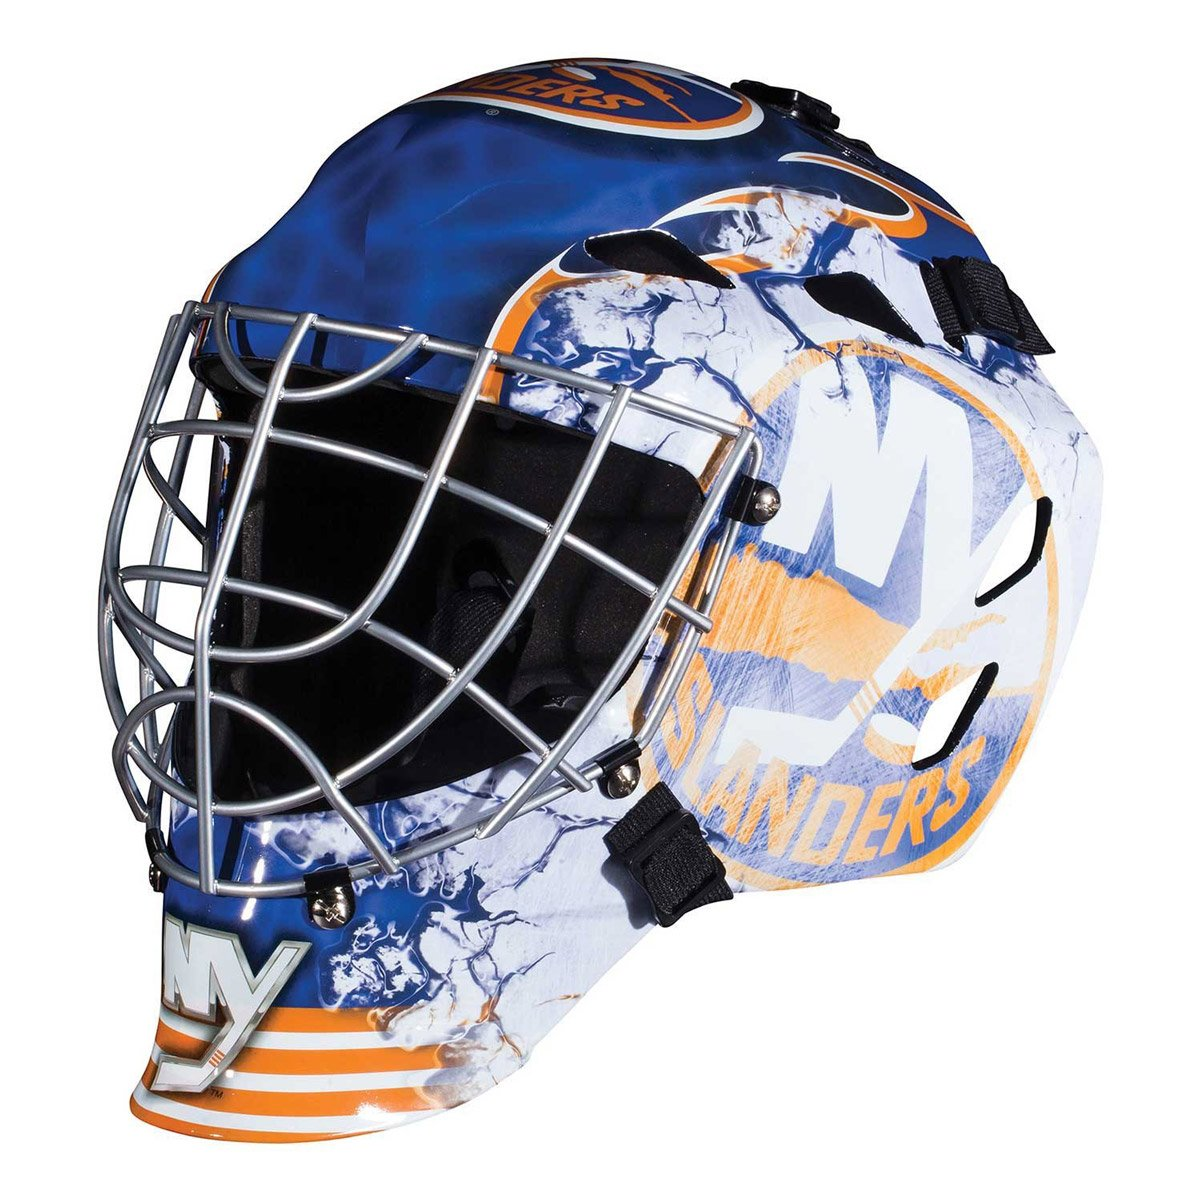 on sale 9766a d404b Collectible miniature goalie mask Official NHL team colors and logos  Authentic pro-style mask and cage design Molded plastic vented shell with  foam liner ...